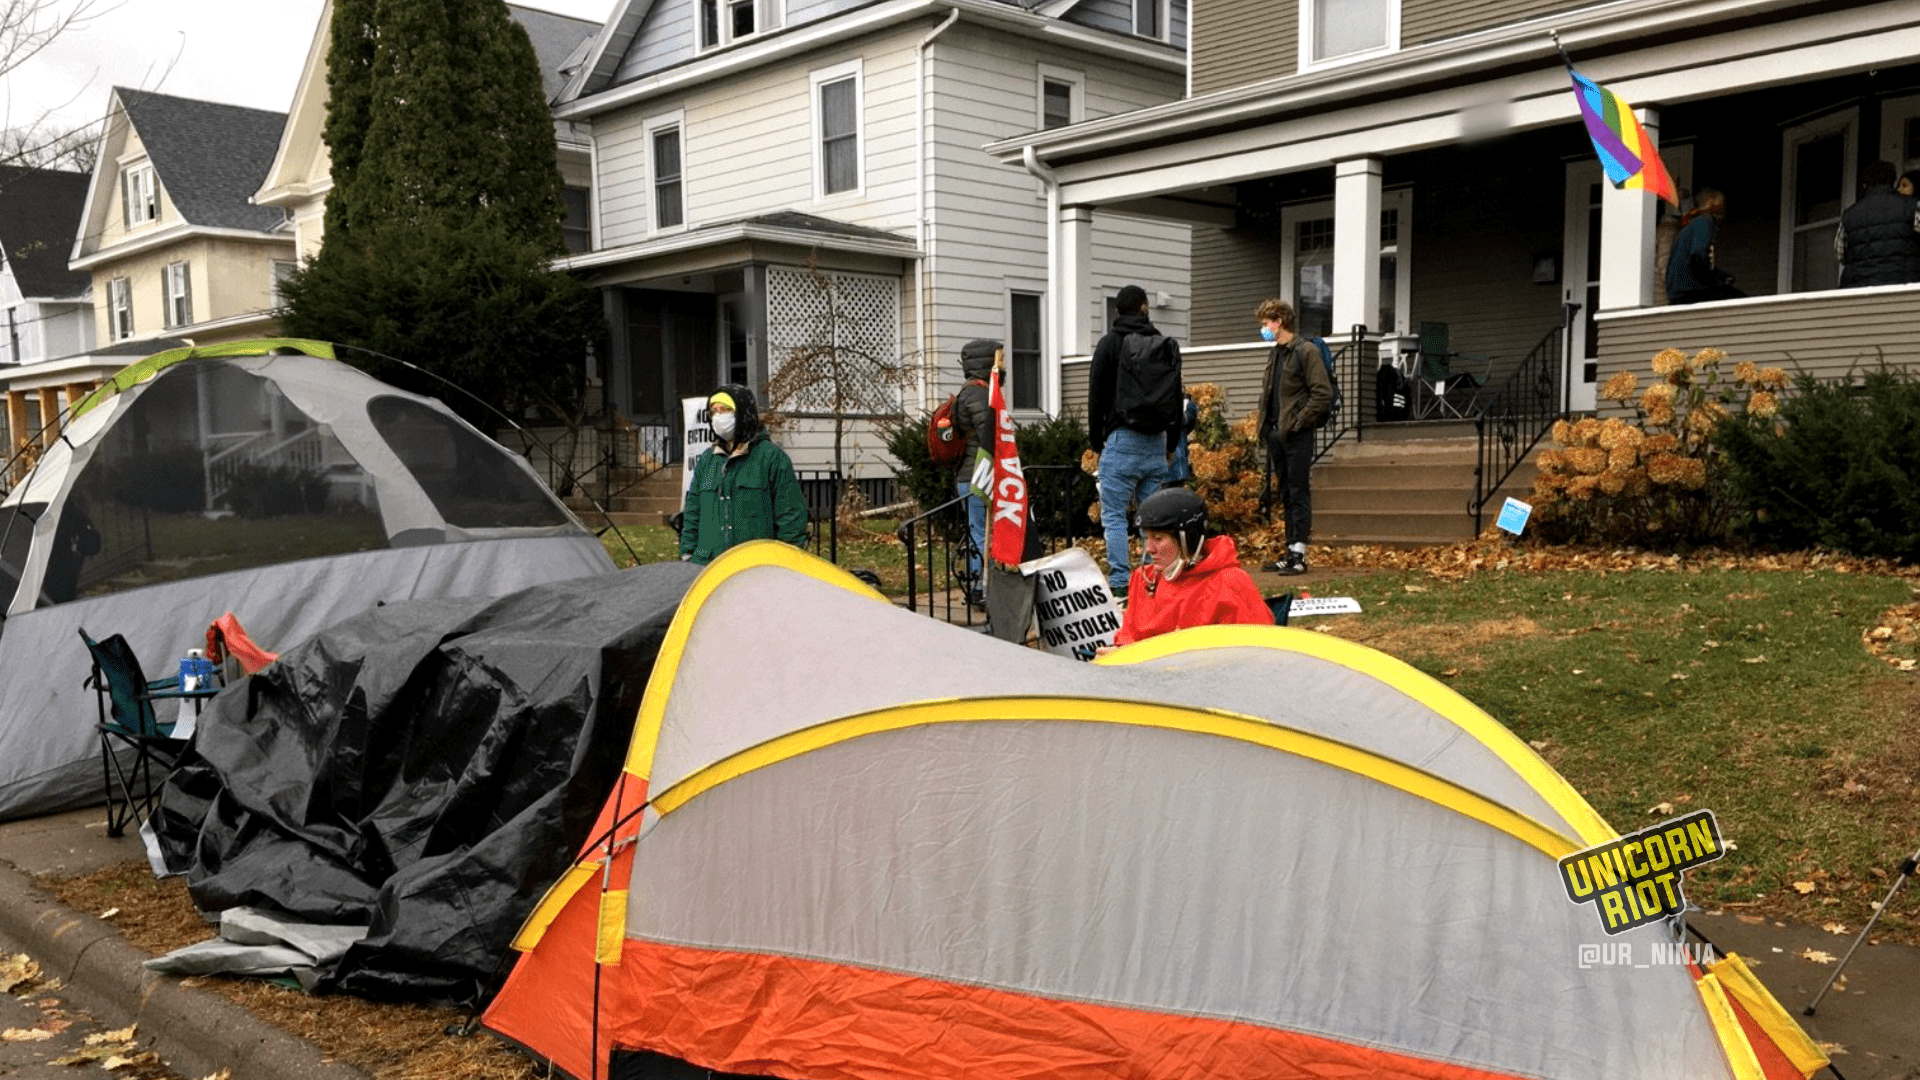 image: single- and double-person tents are positioned on the sidewalk in front of Commissioner Marion Greene's home in South Minneapolis. 5 community members are gathered on her front lawn talking, while a few others are sitting at a table on her front porch.